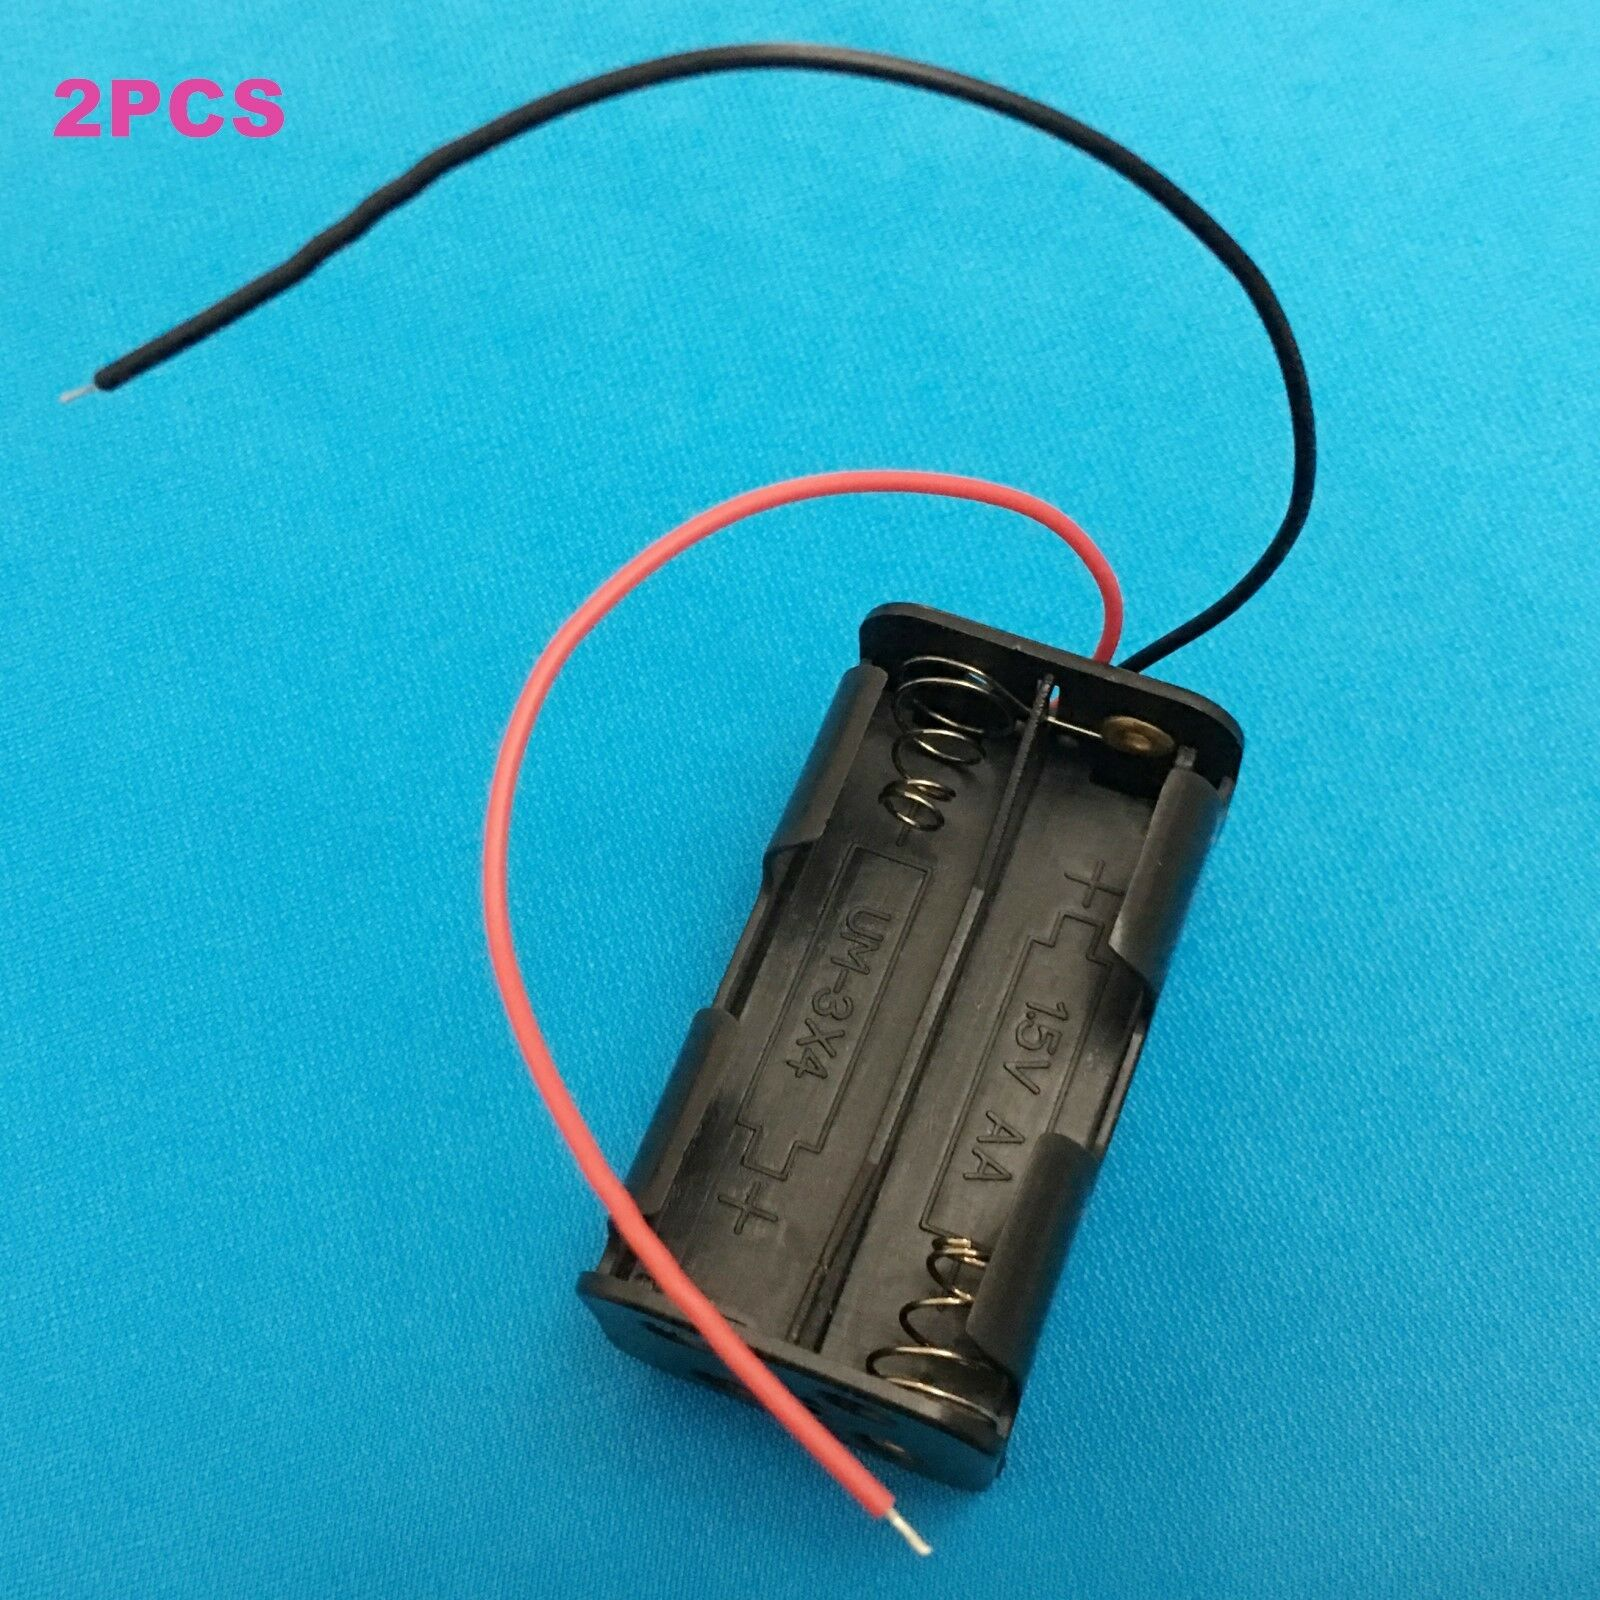 2PC plastic connector holder for 2X1.5V AA R6P or 2X3.7V 14500 Li-ion battery